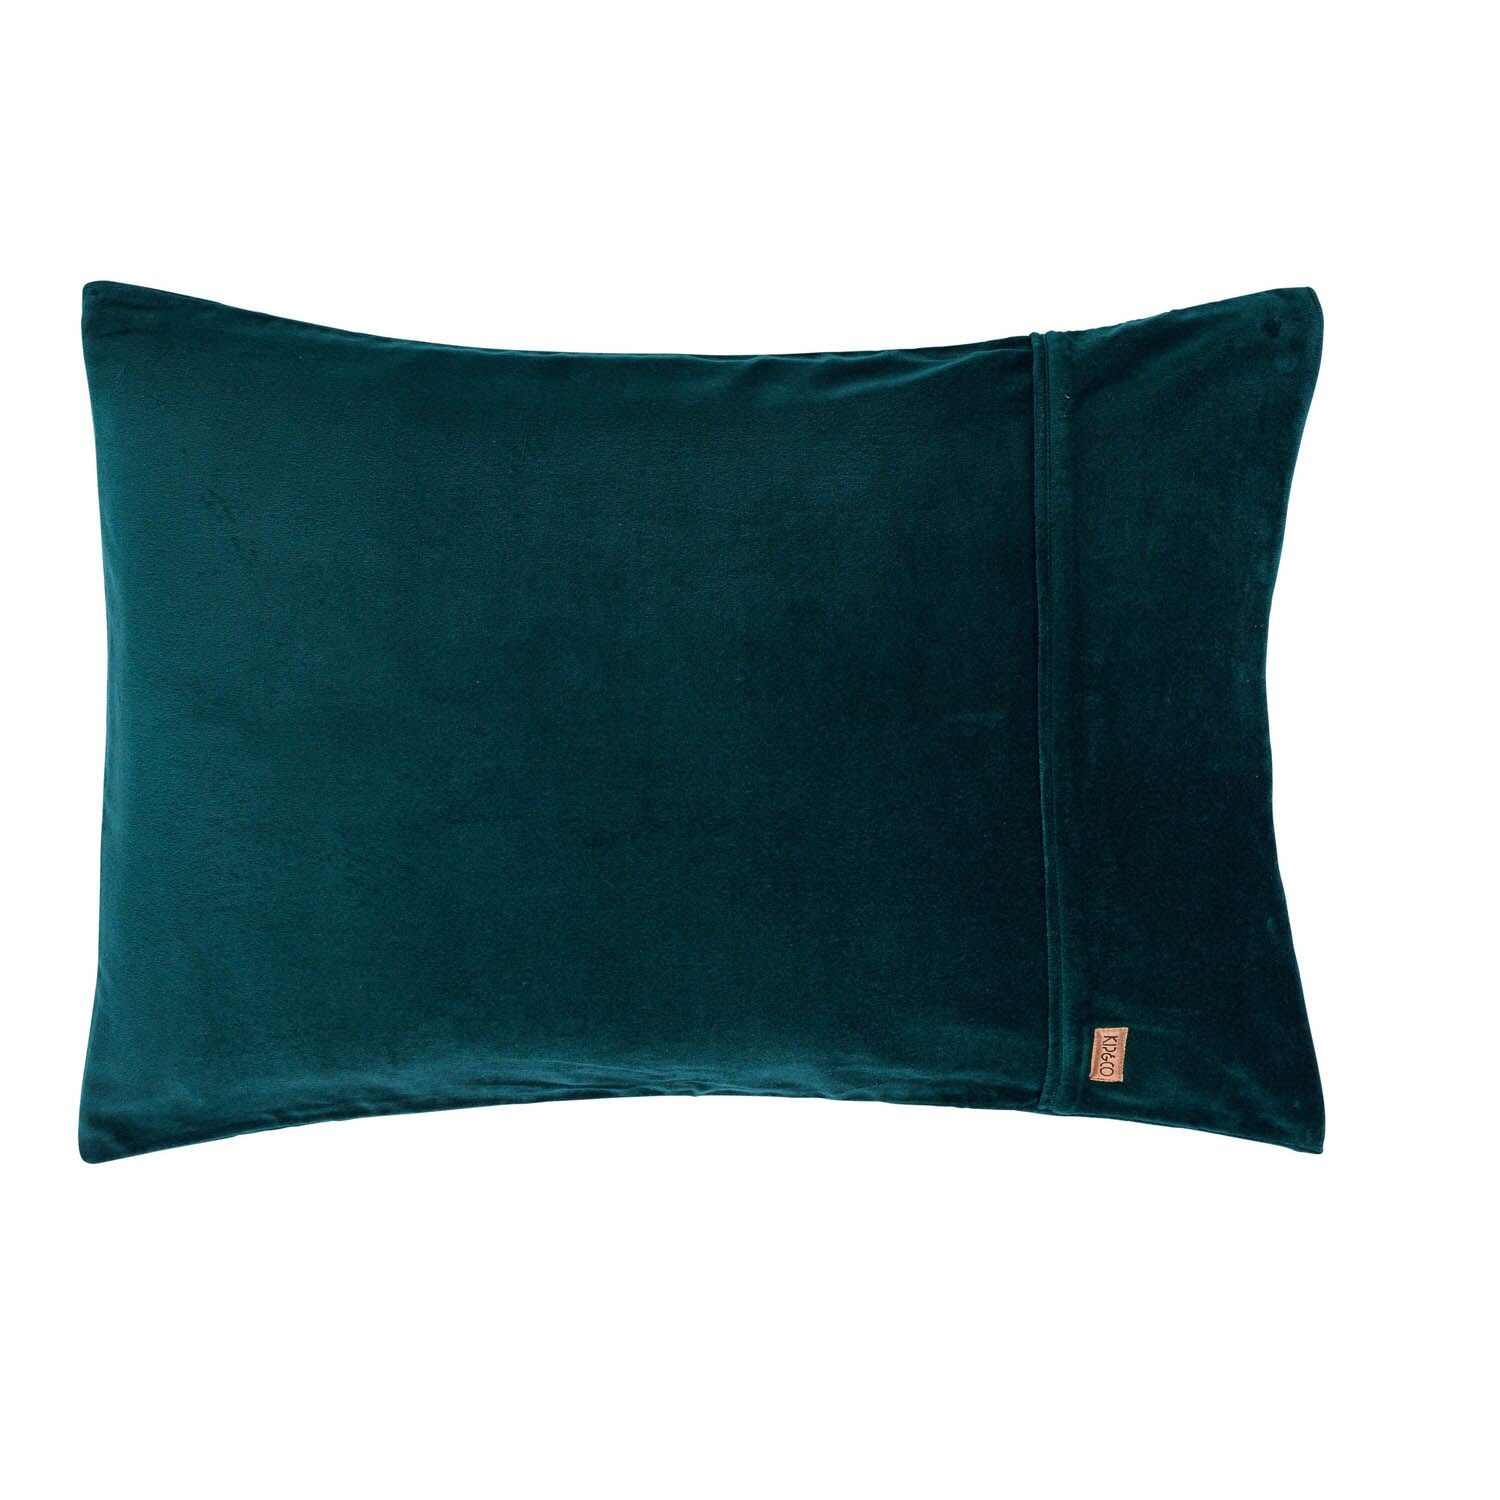 Kip & Co Alpine Green Velvet Pillowcase 2P Set - The Artisan Storeroom